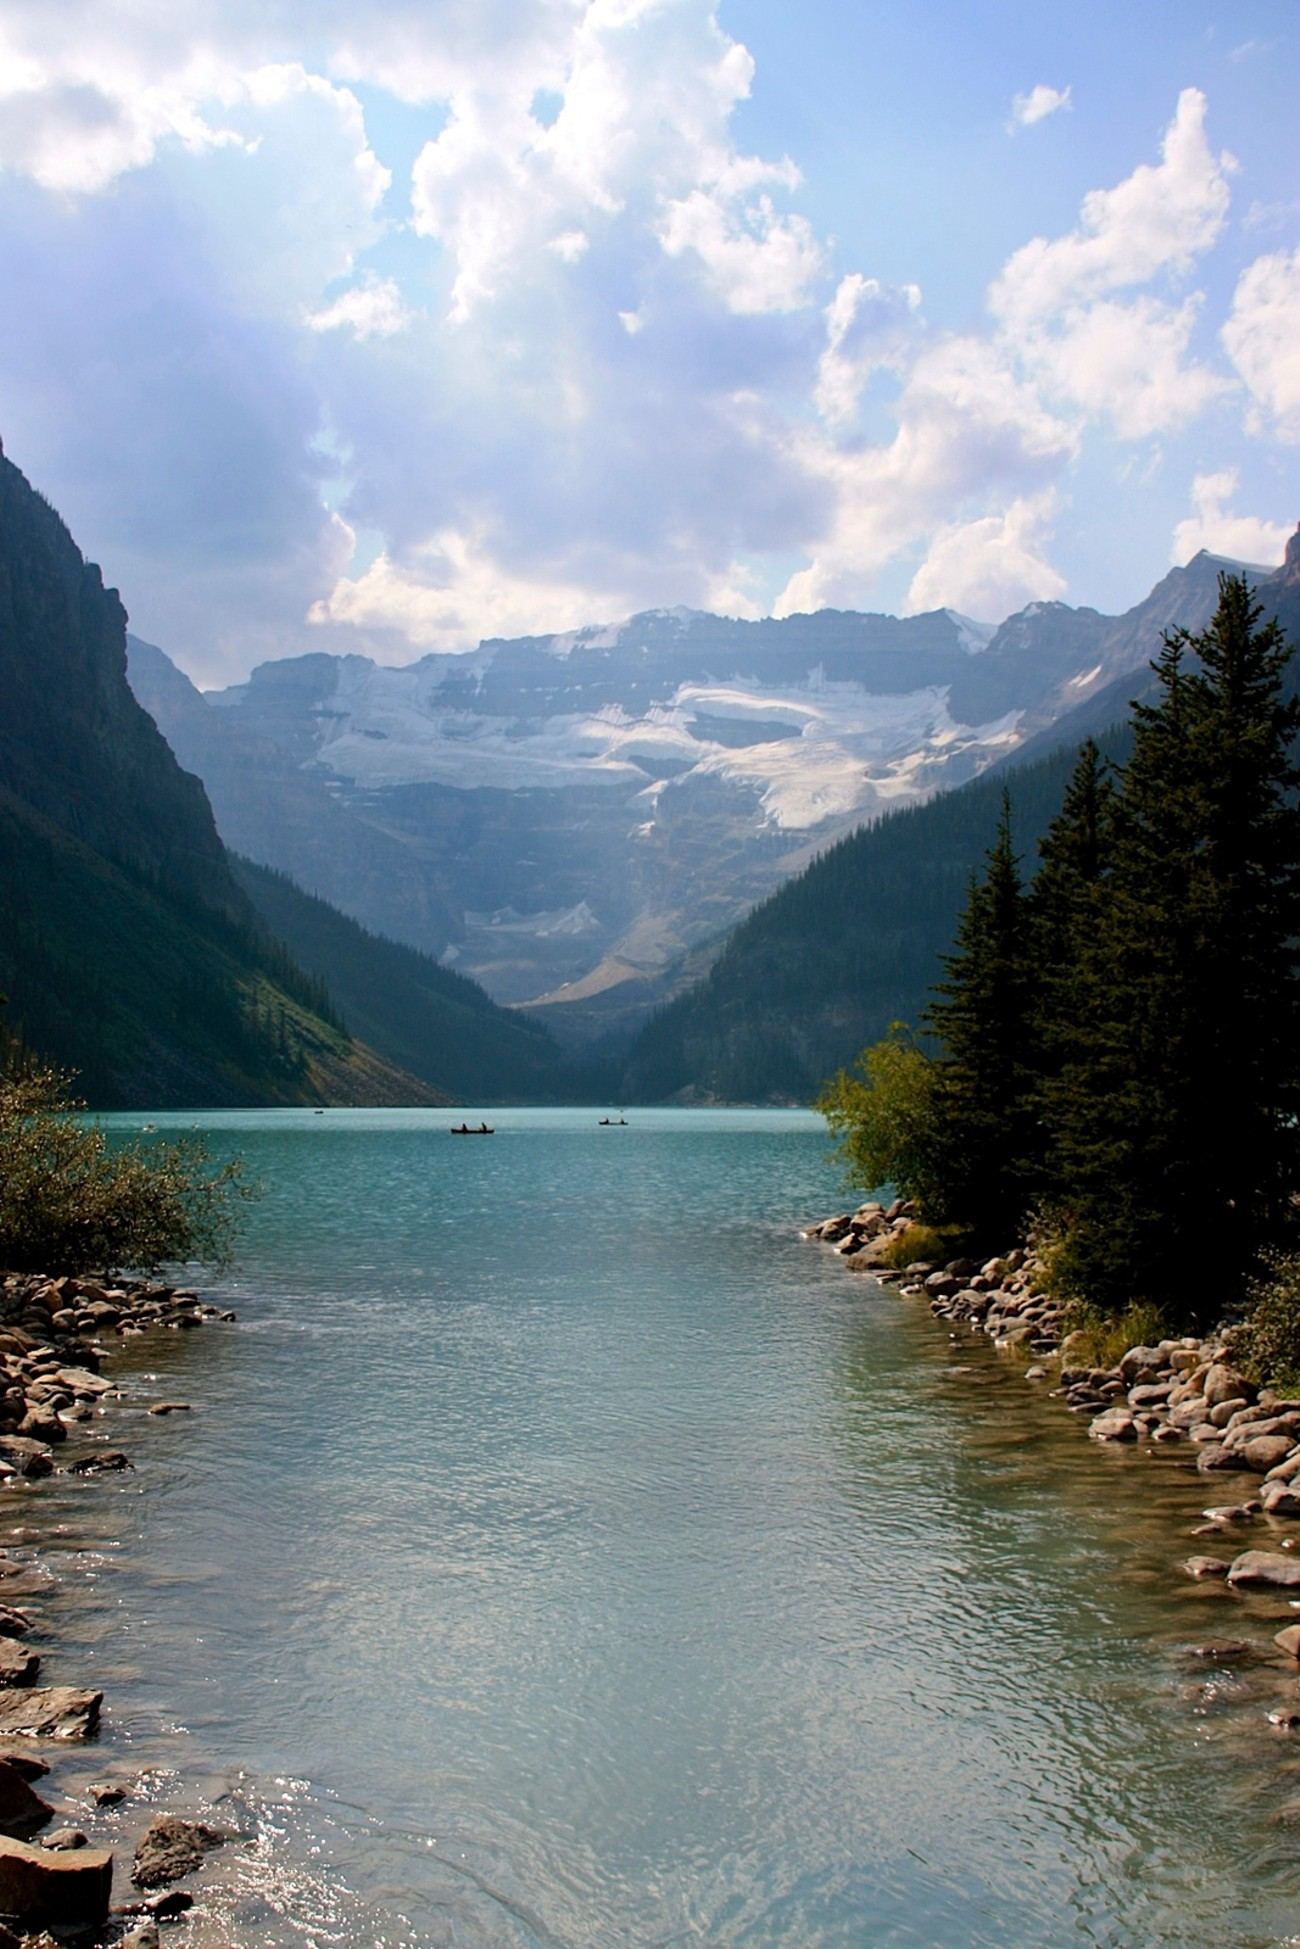 This is a water inlet into Lake Louise, Canada.